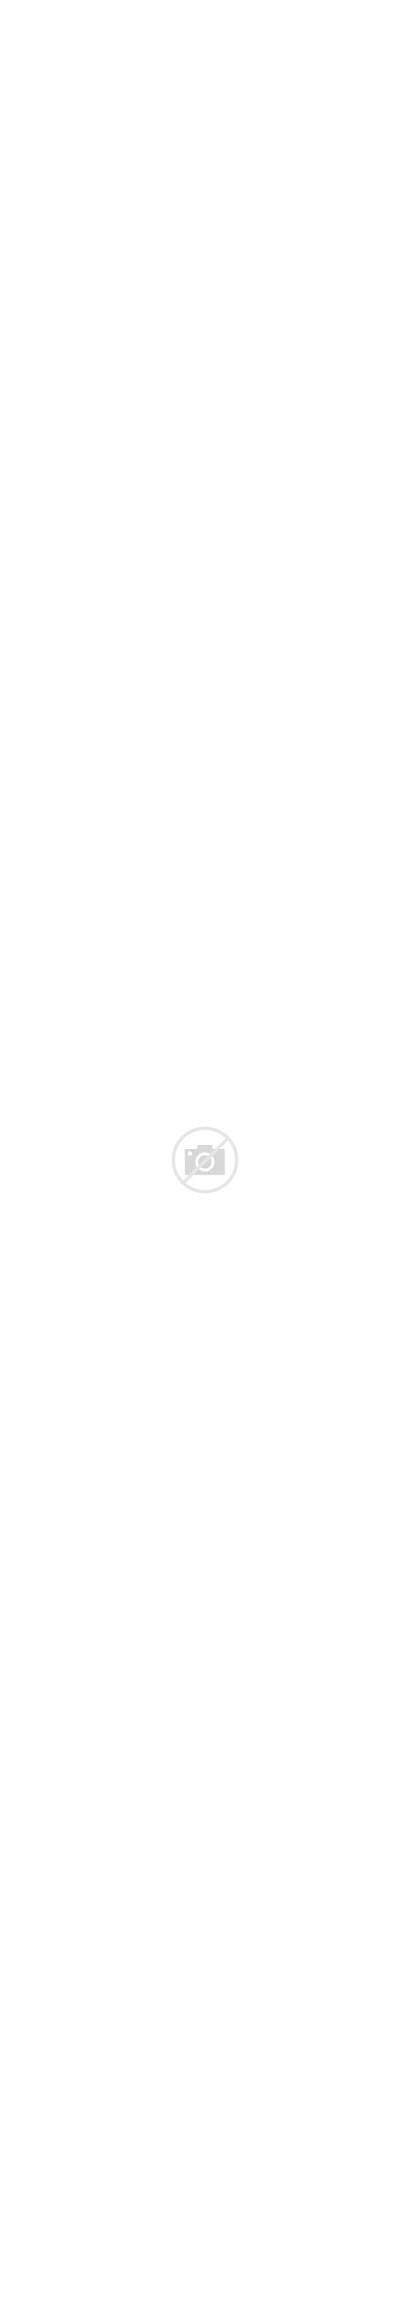 Workouts Workout Exercises Quick Minute Equipment Total